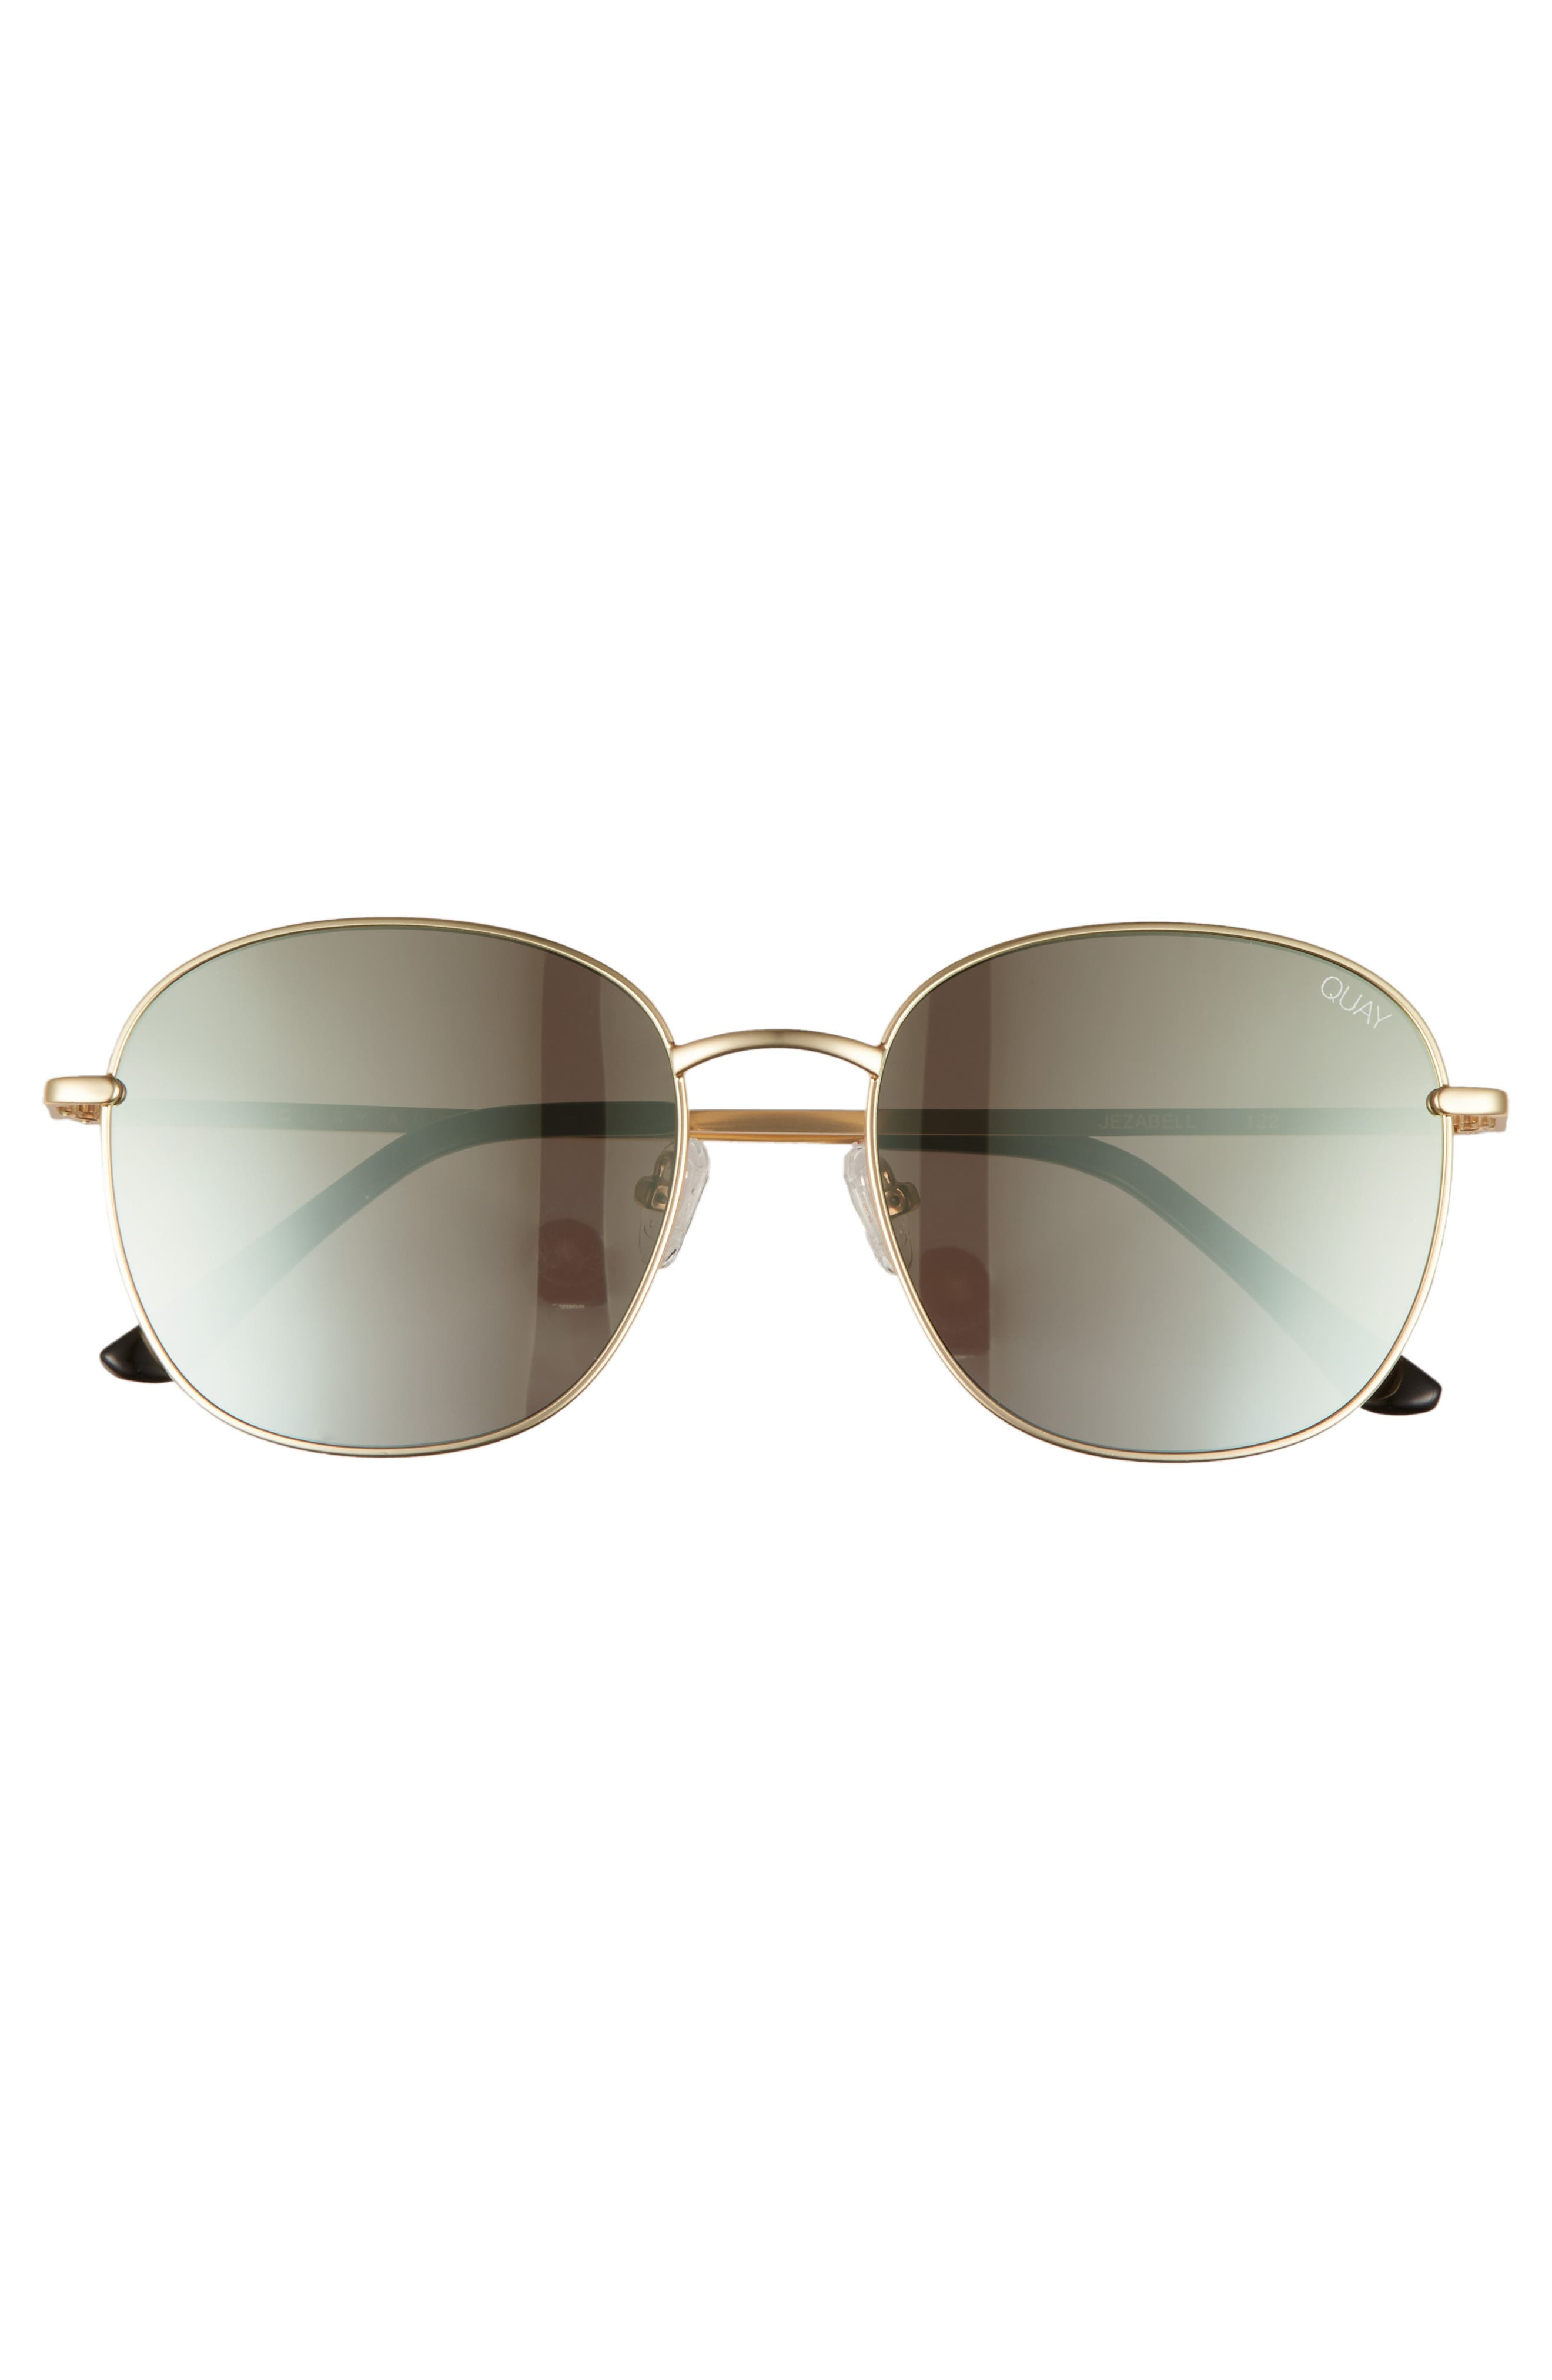 Jezabell 57mm Round Sunglasses,                             Alternate thumbnail 3, color,                             GOLD/ GOLD